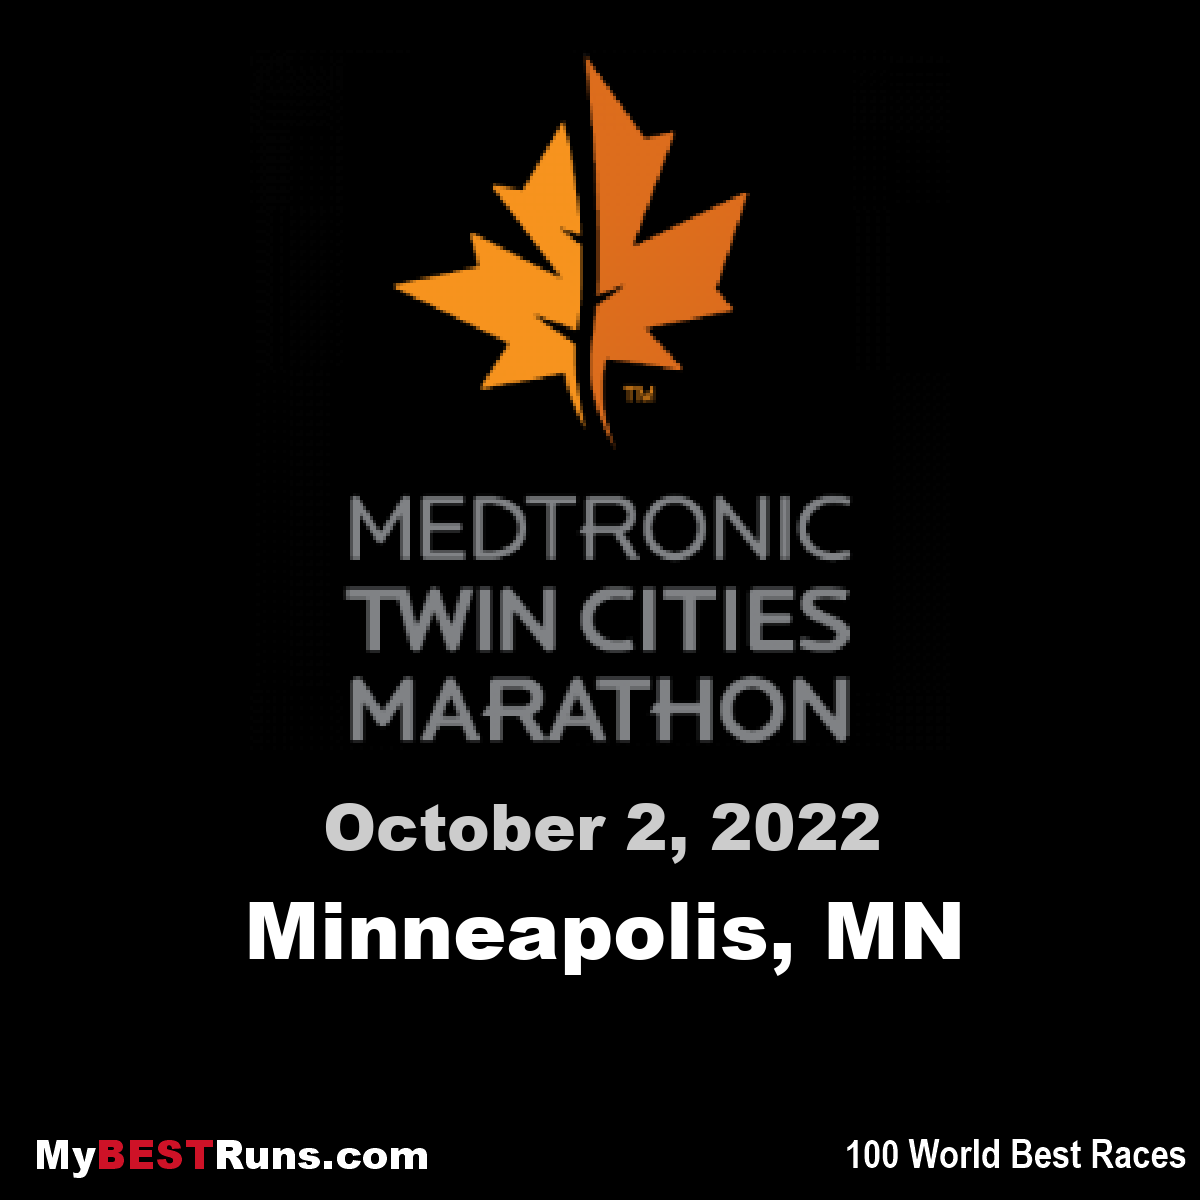 Medtronic Twin Cities Marathon Weekend - Minneapolis